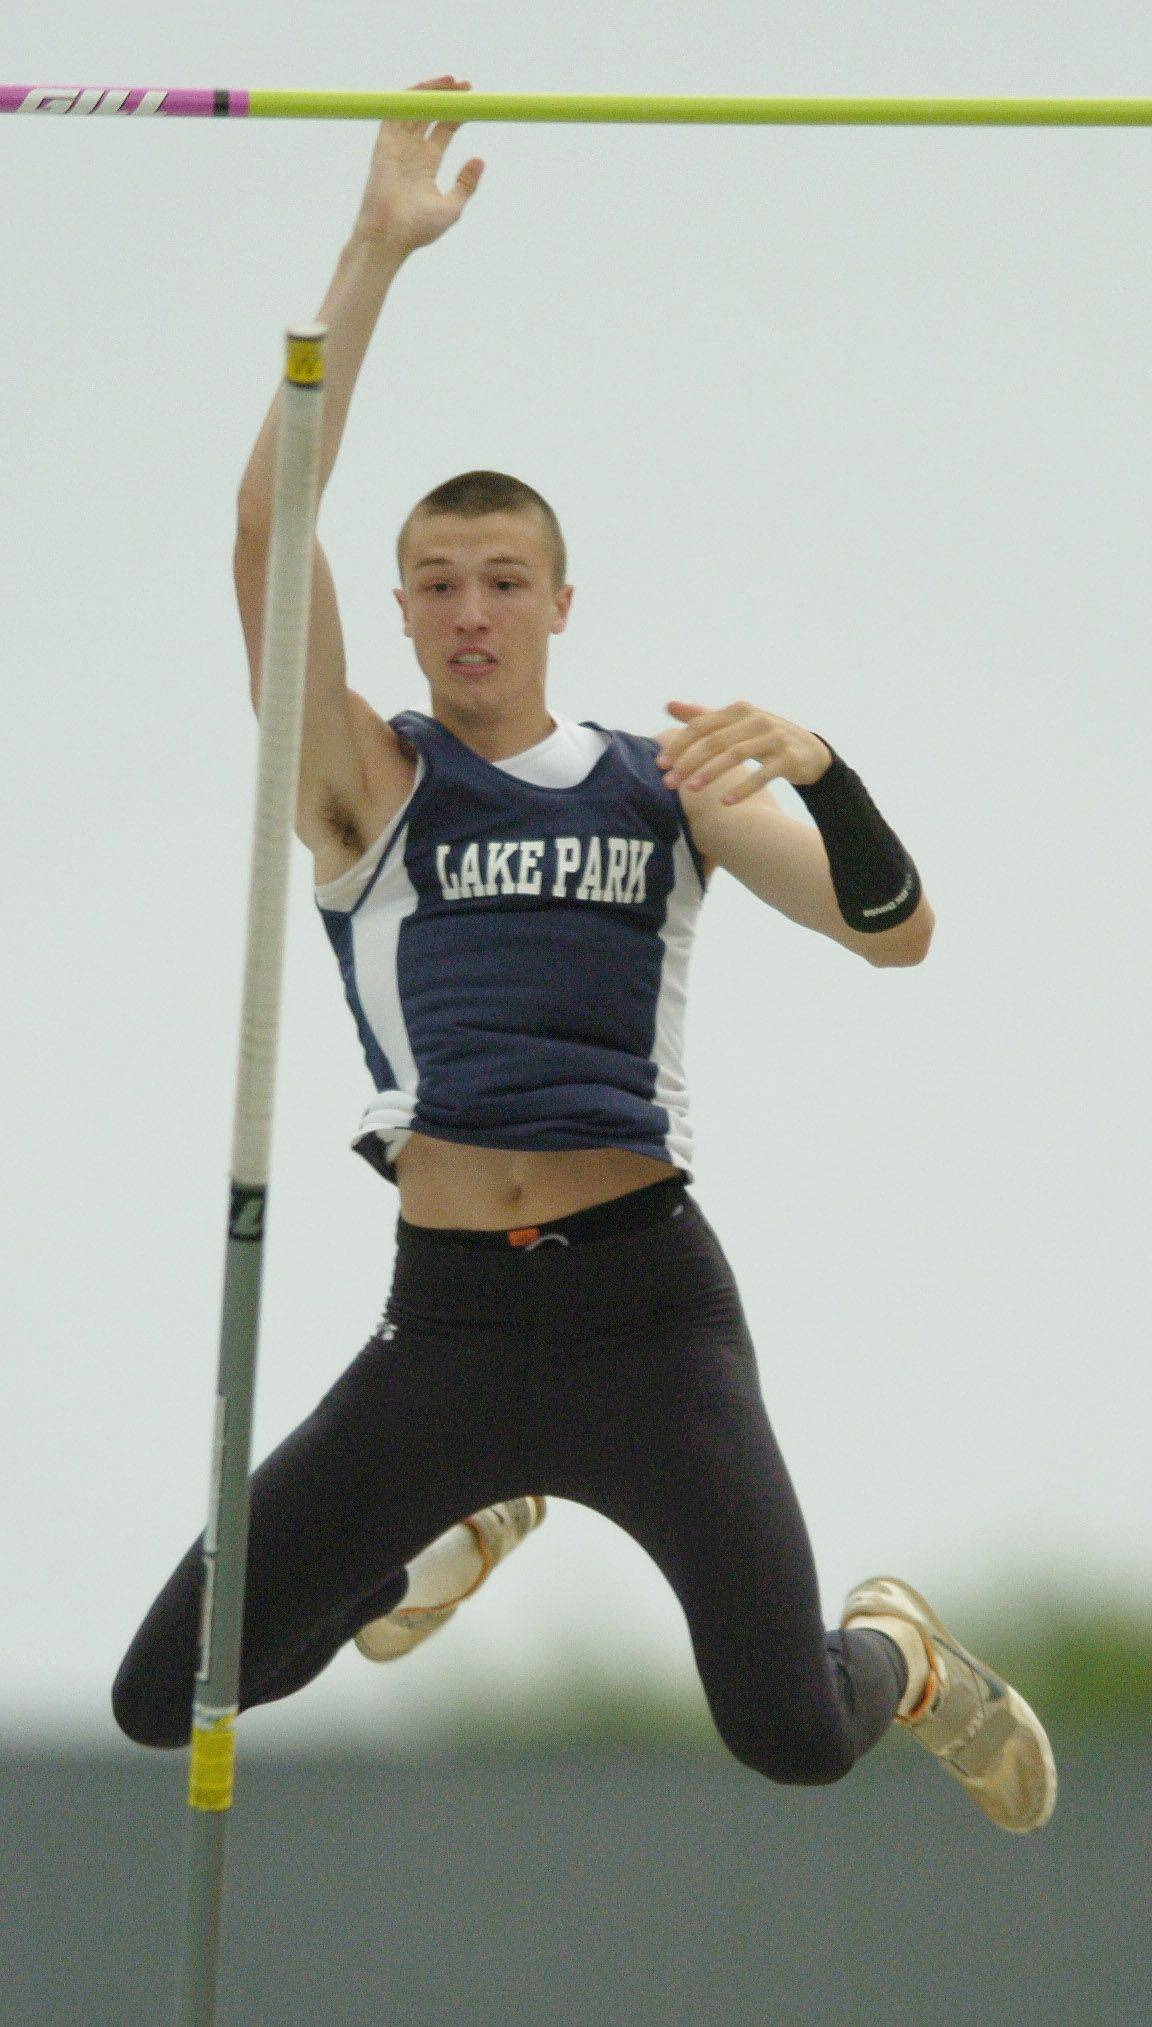 Lake Park's Zach Ziemek clears the bar in the class 3A pole vault during the boys state track finals in Charleston Friday.